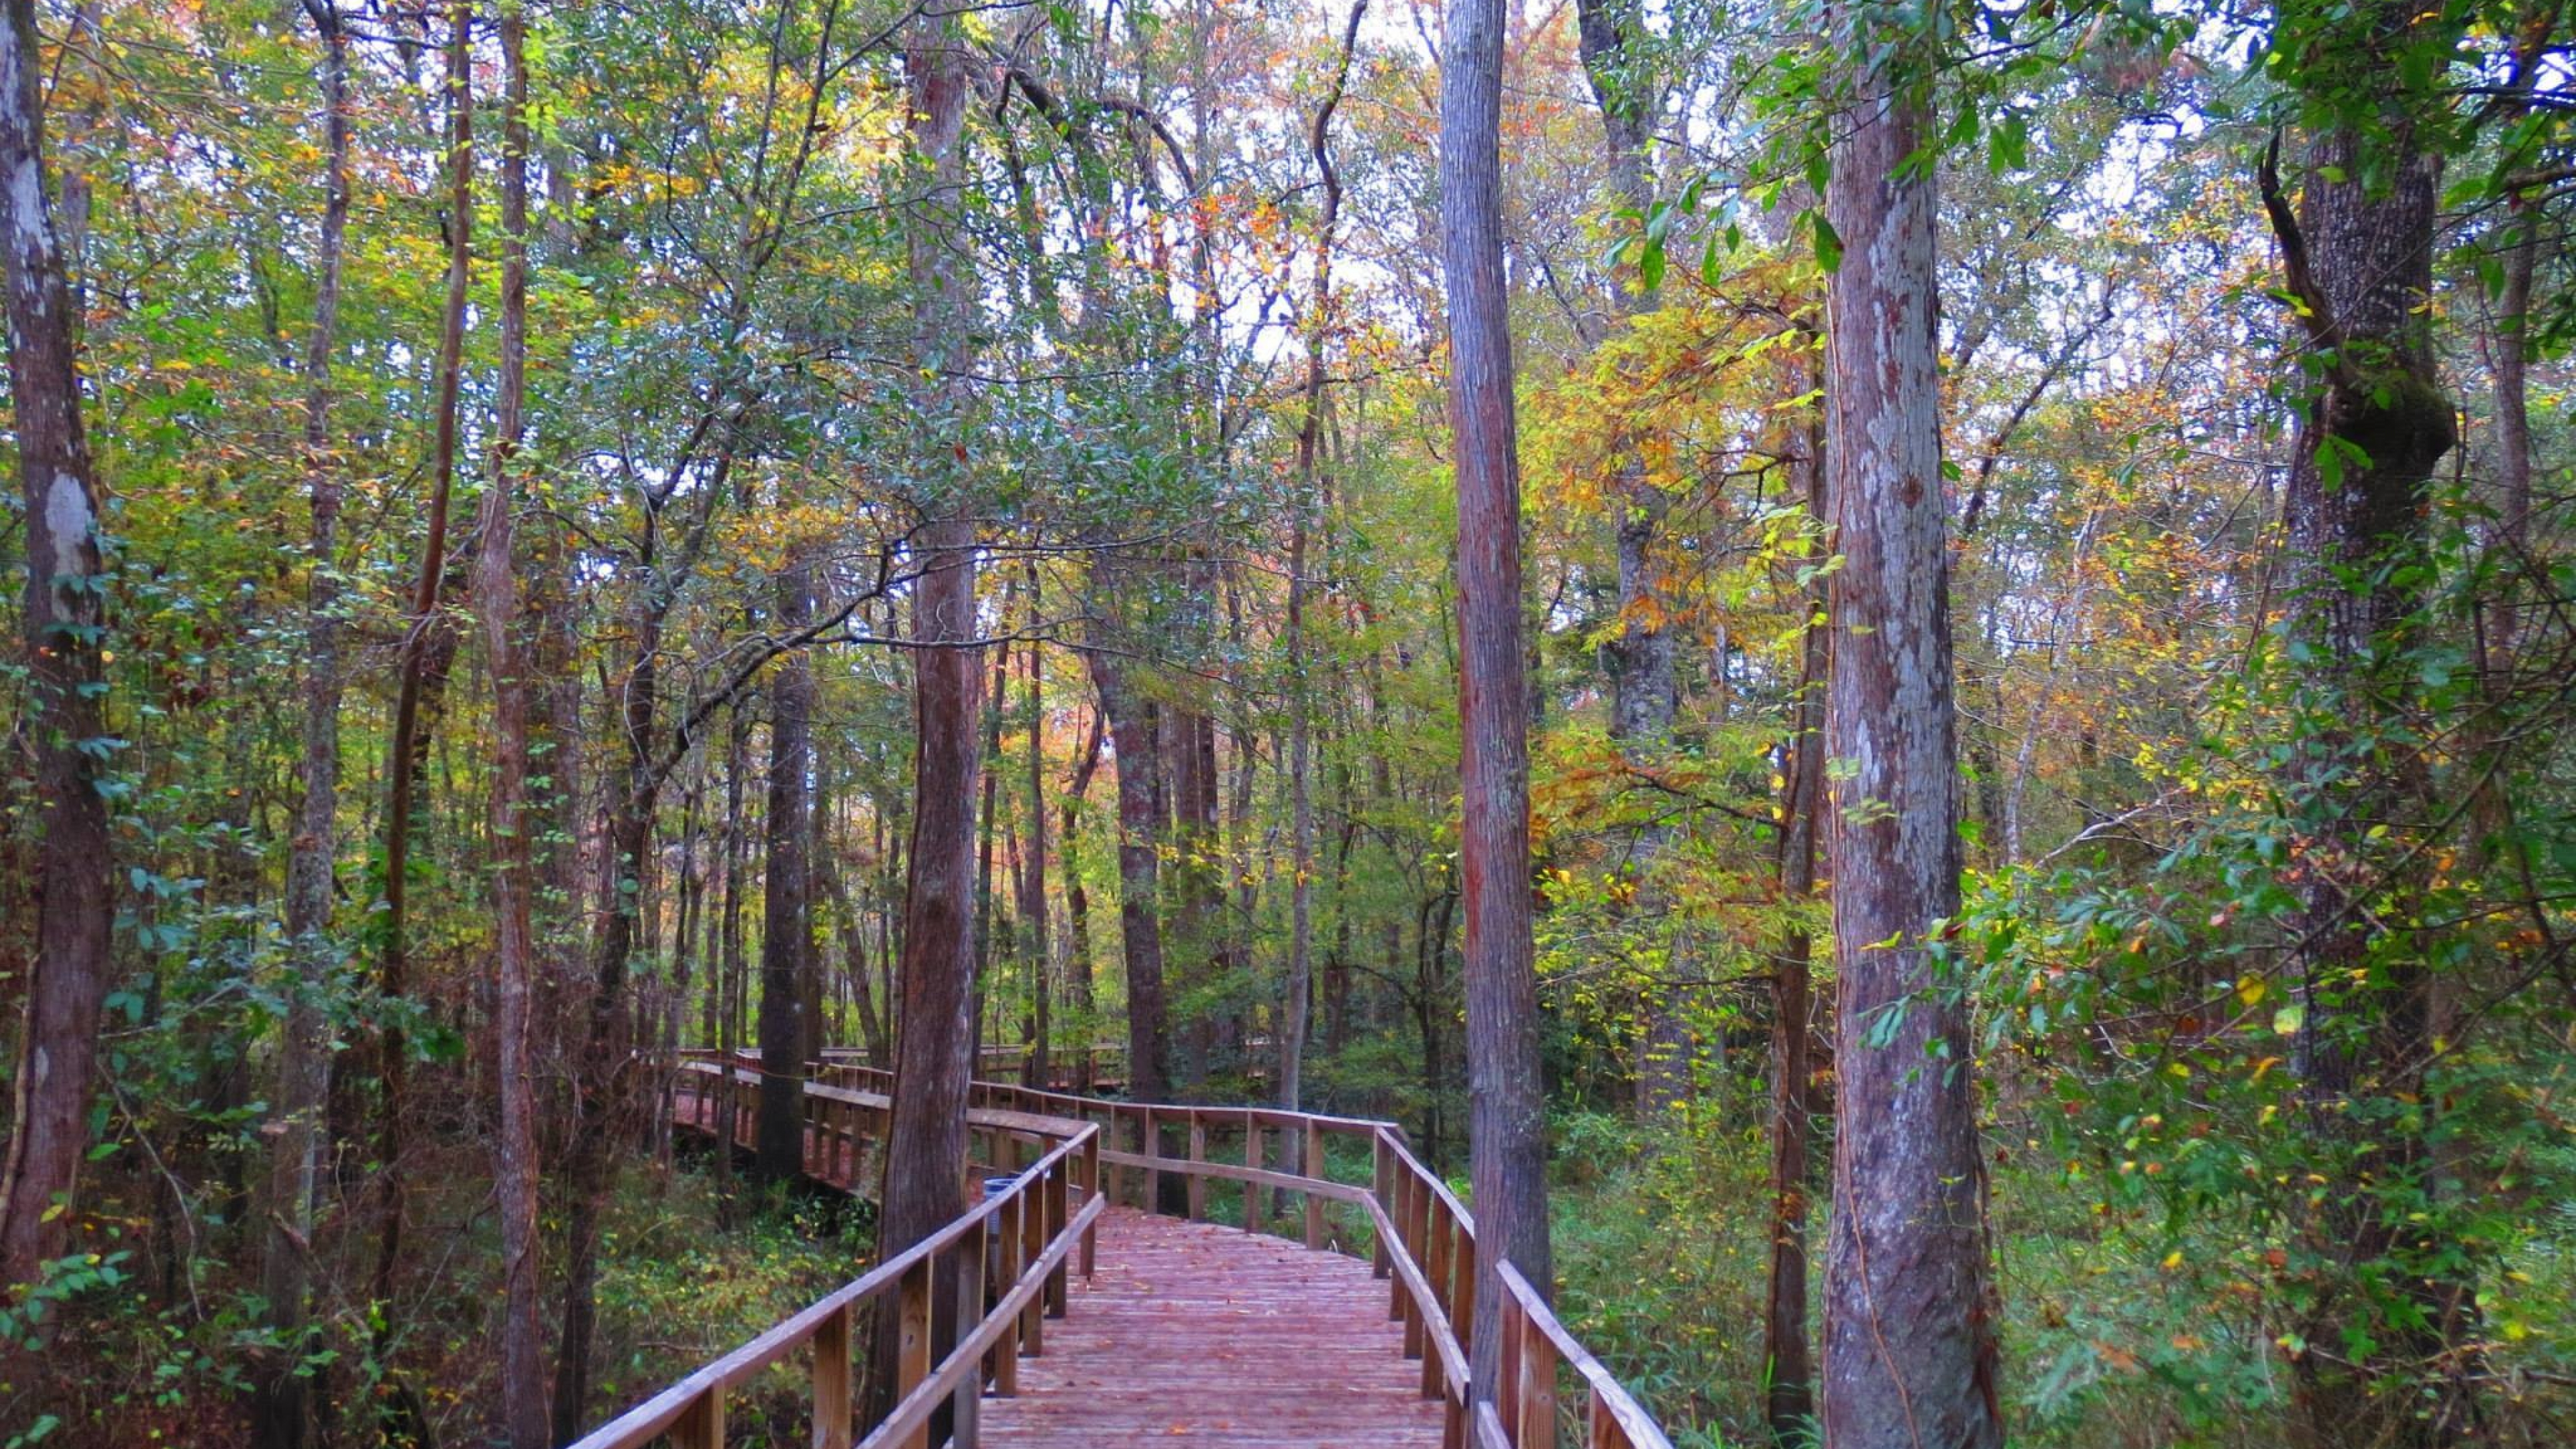 Elevated wooden trail through the forest in Moores Creek National Battlefield